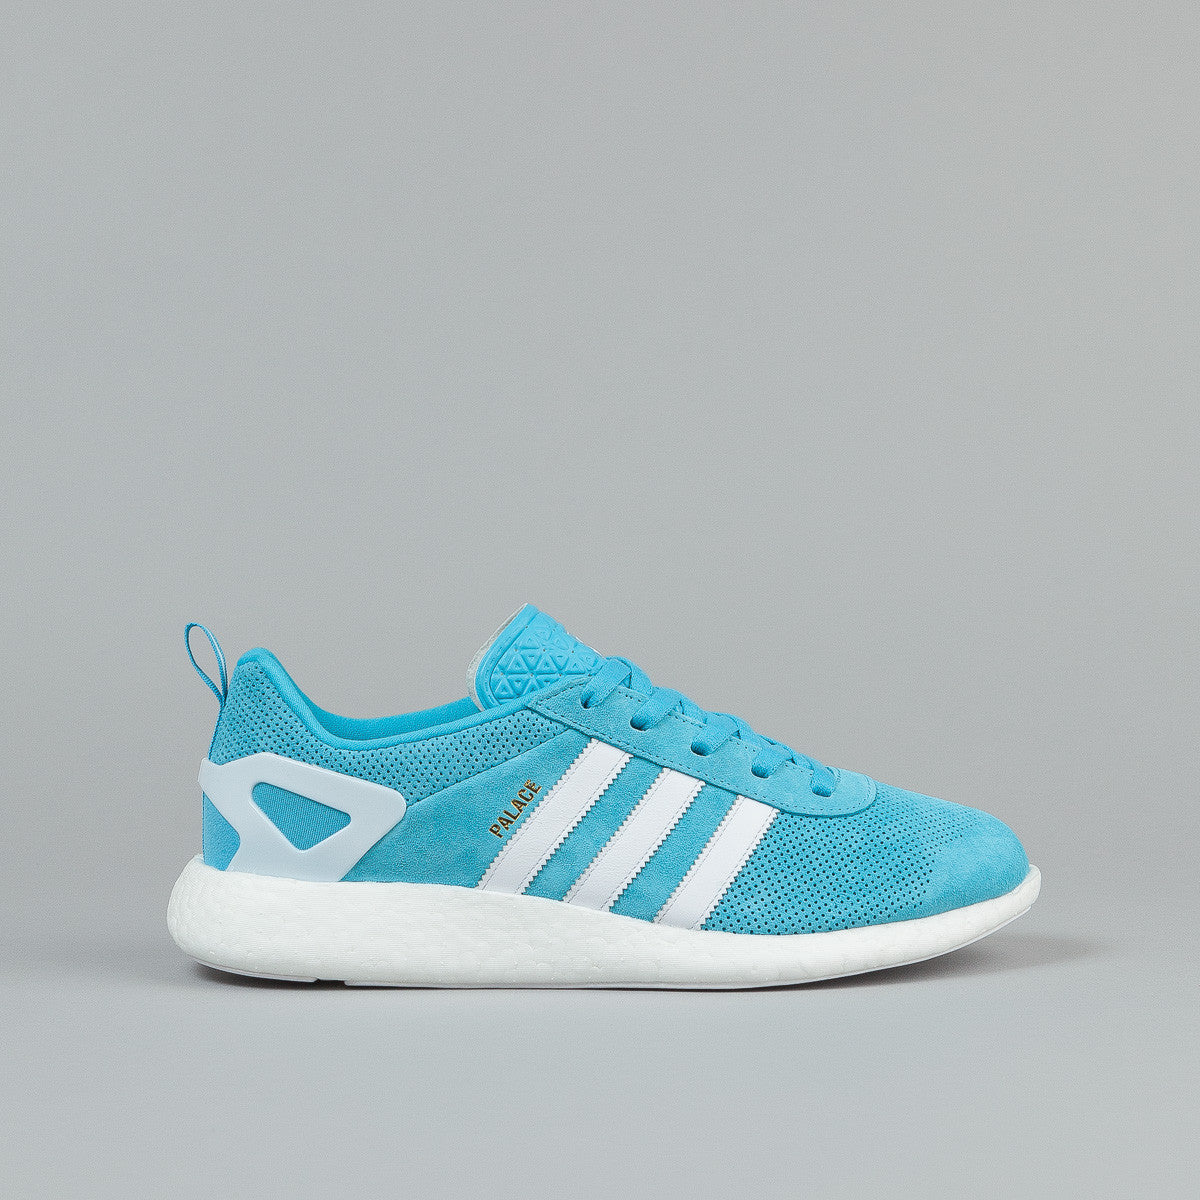 Adidas X Palace Pro Boost Shoes